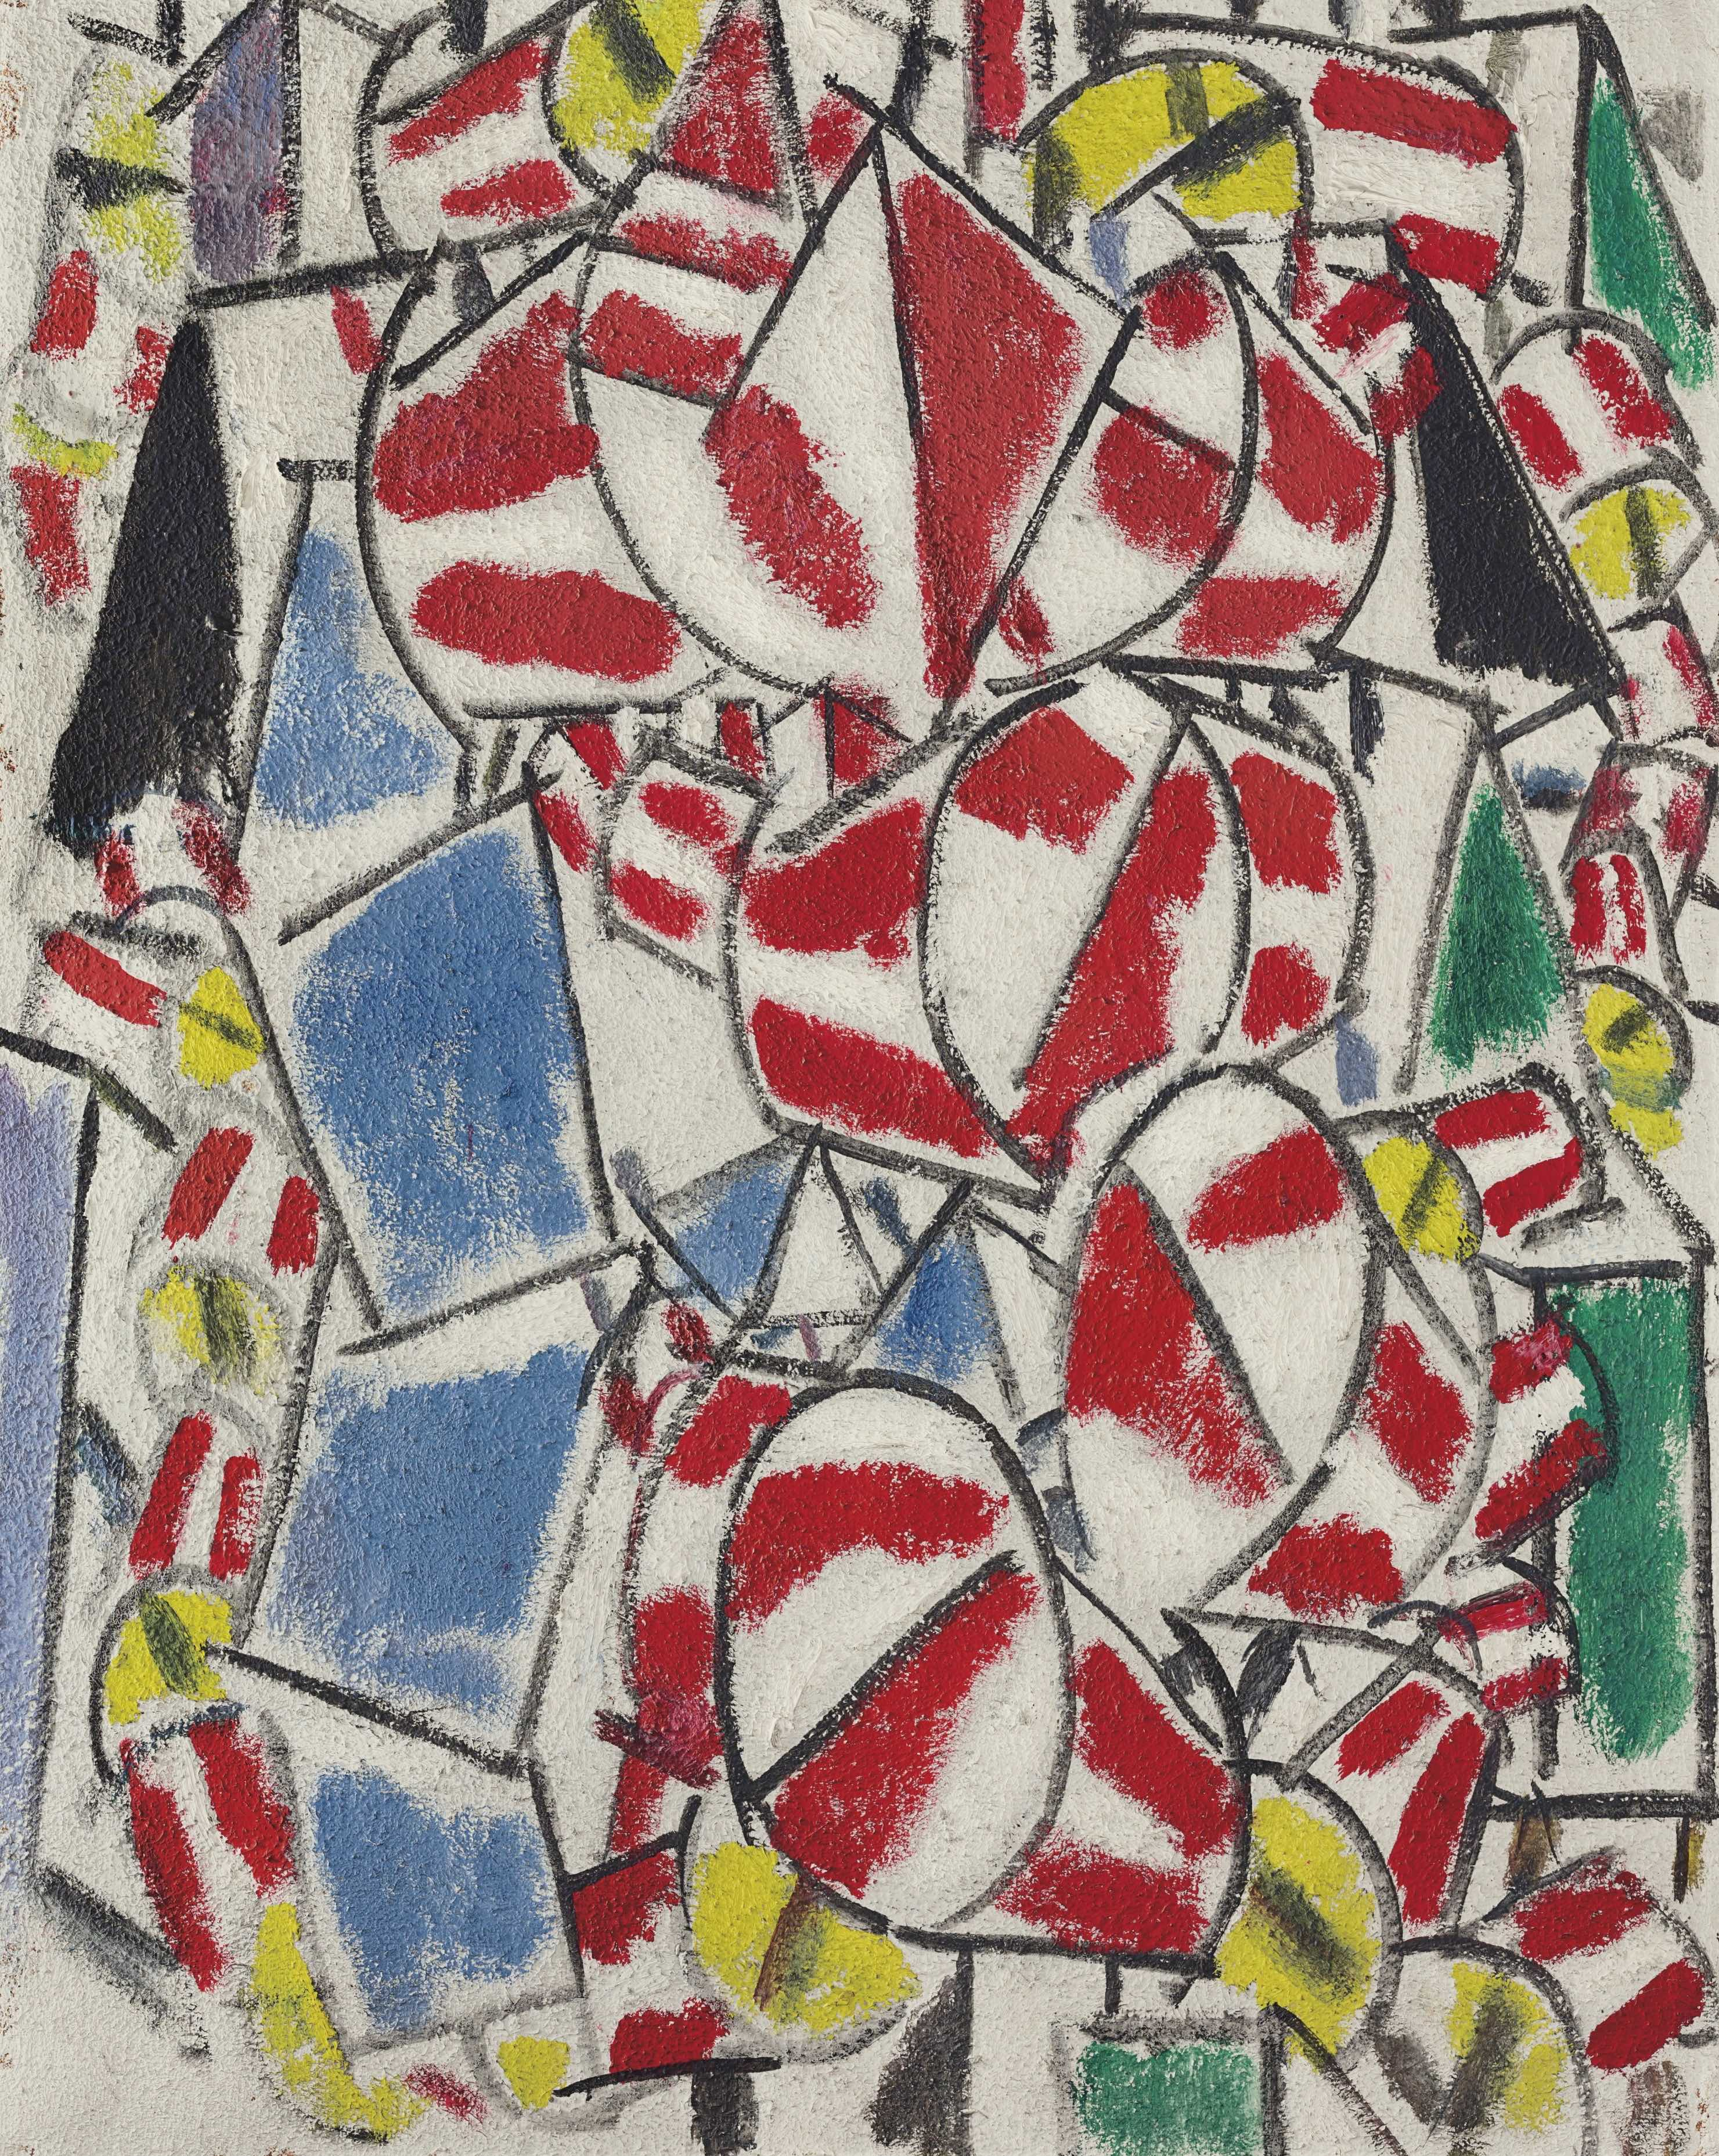 Leger-1913-copy-USE-THIS